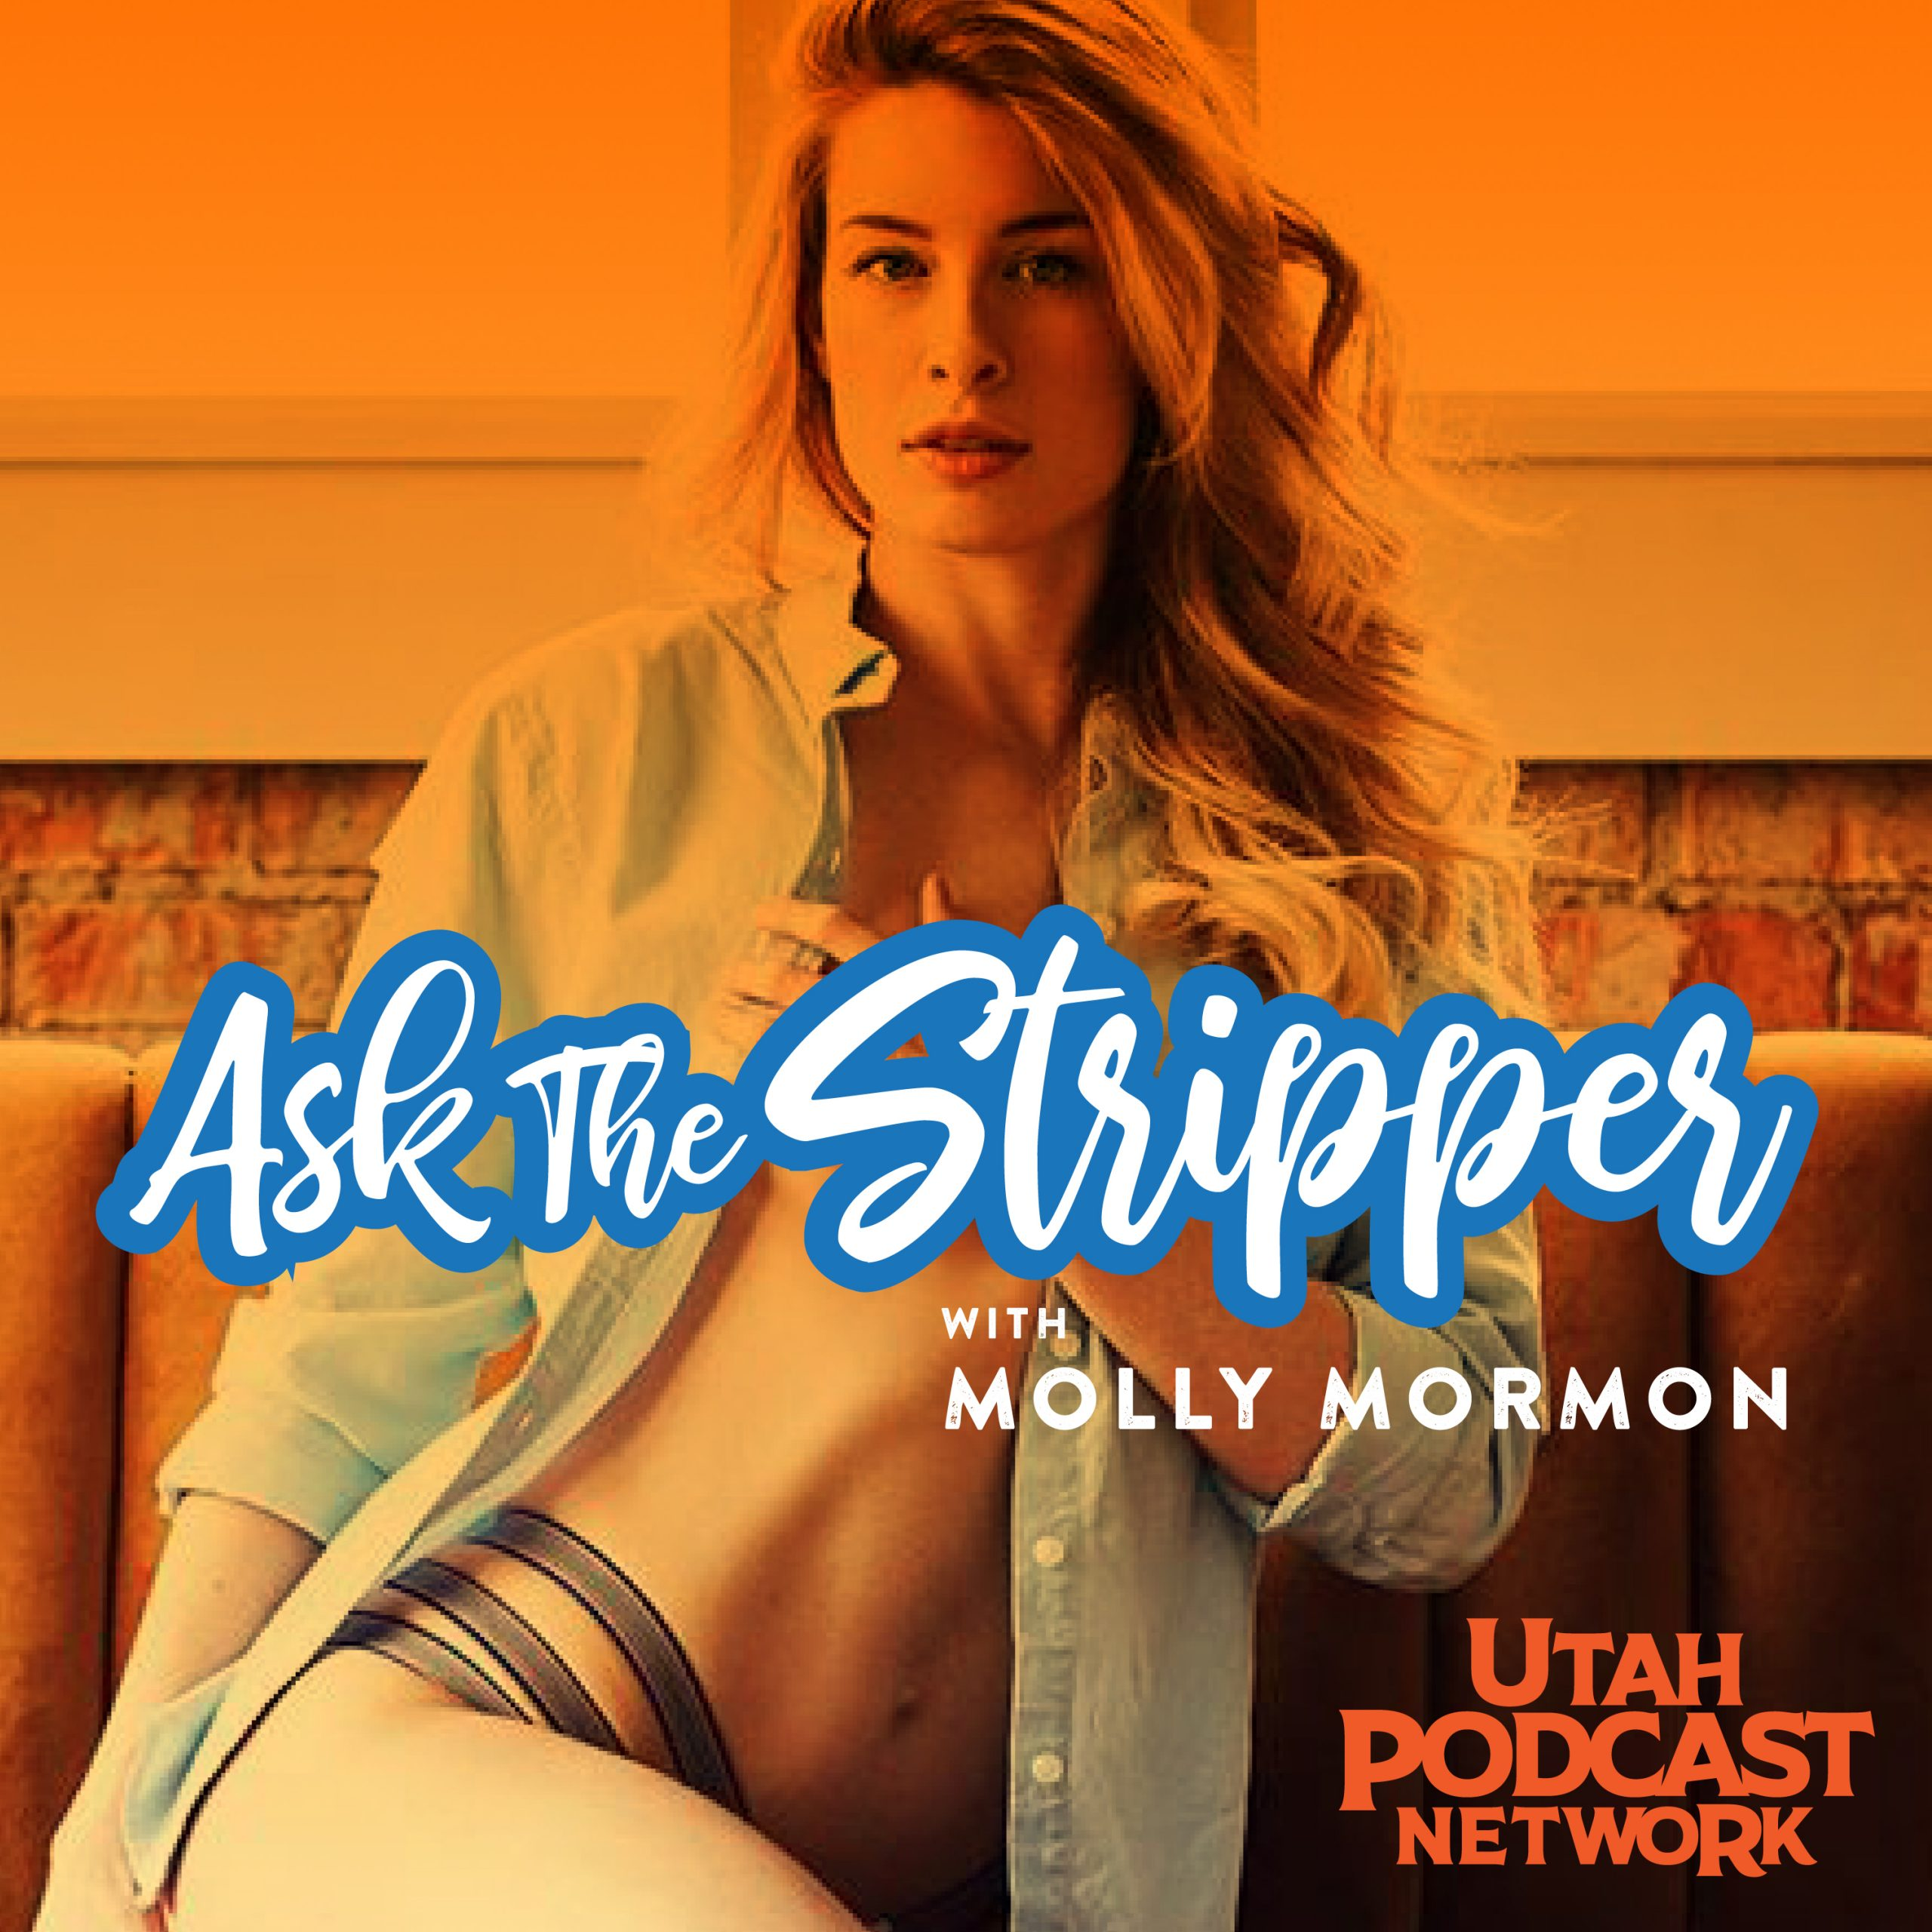 ASK THE STRIPPER